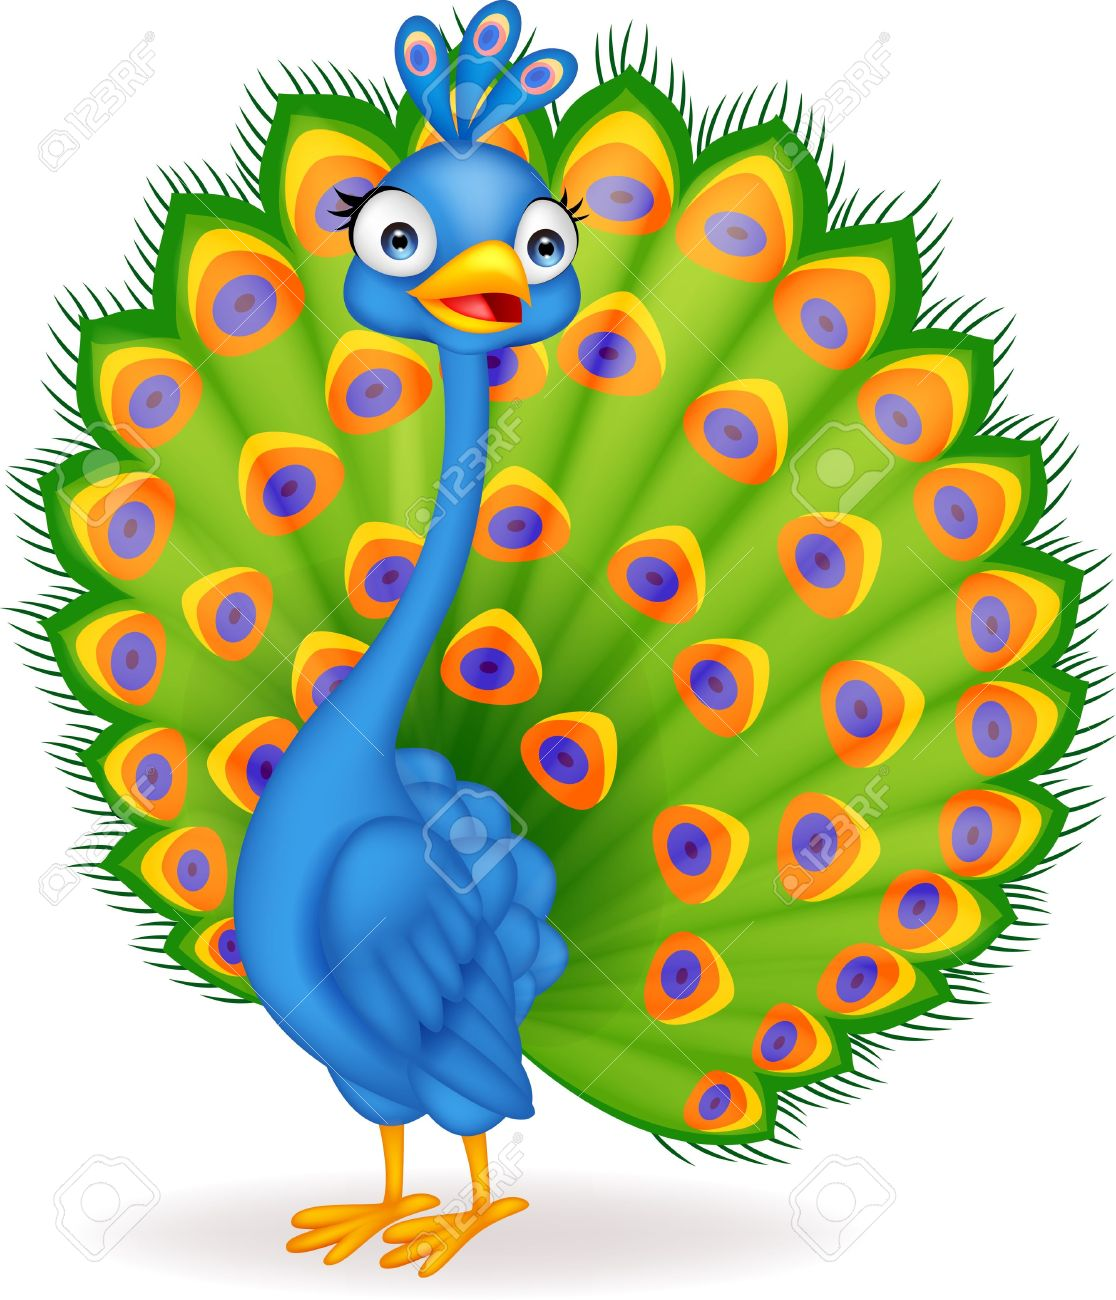 Best Peacock Clipart #12890.